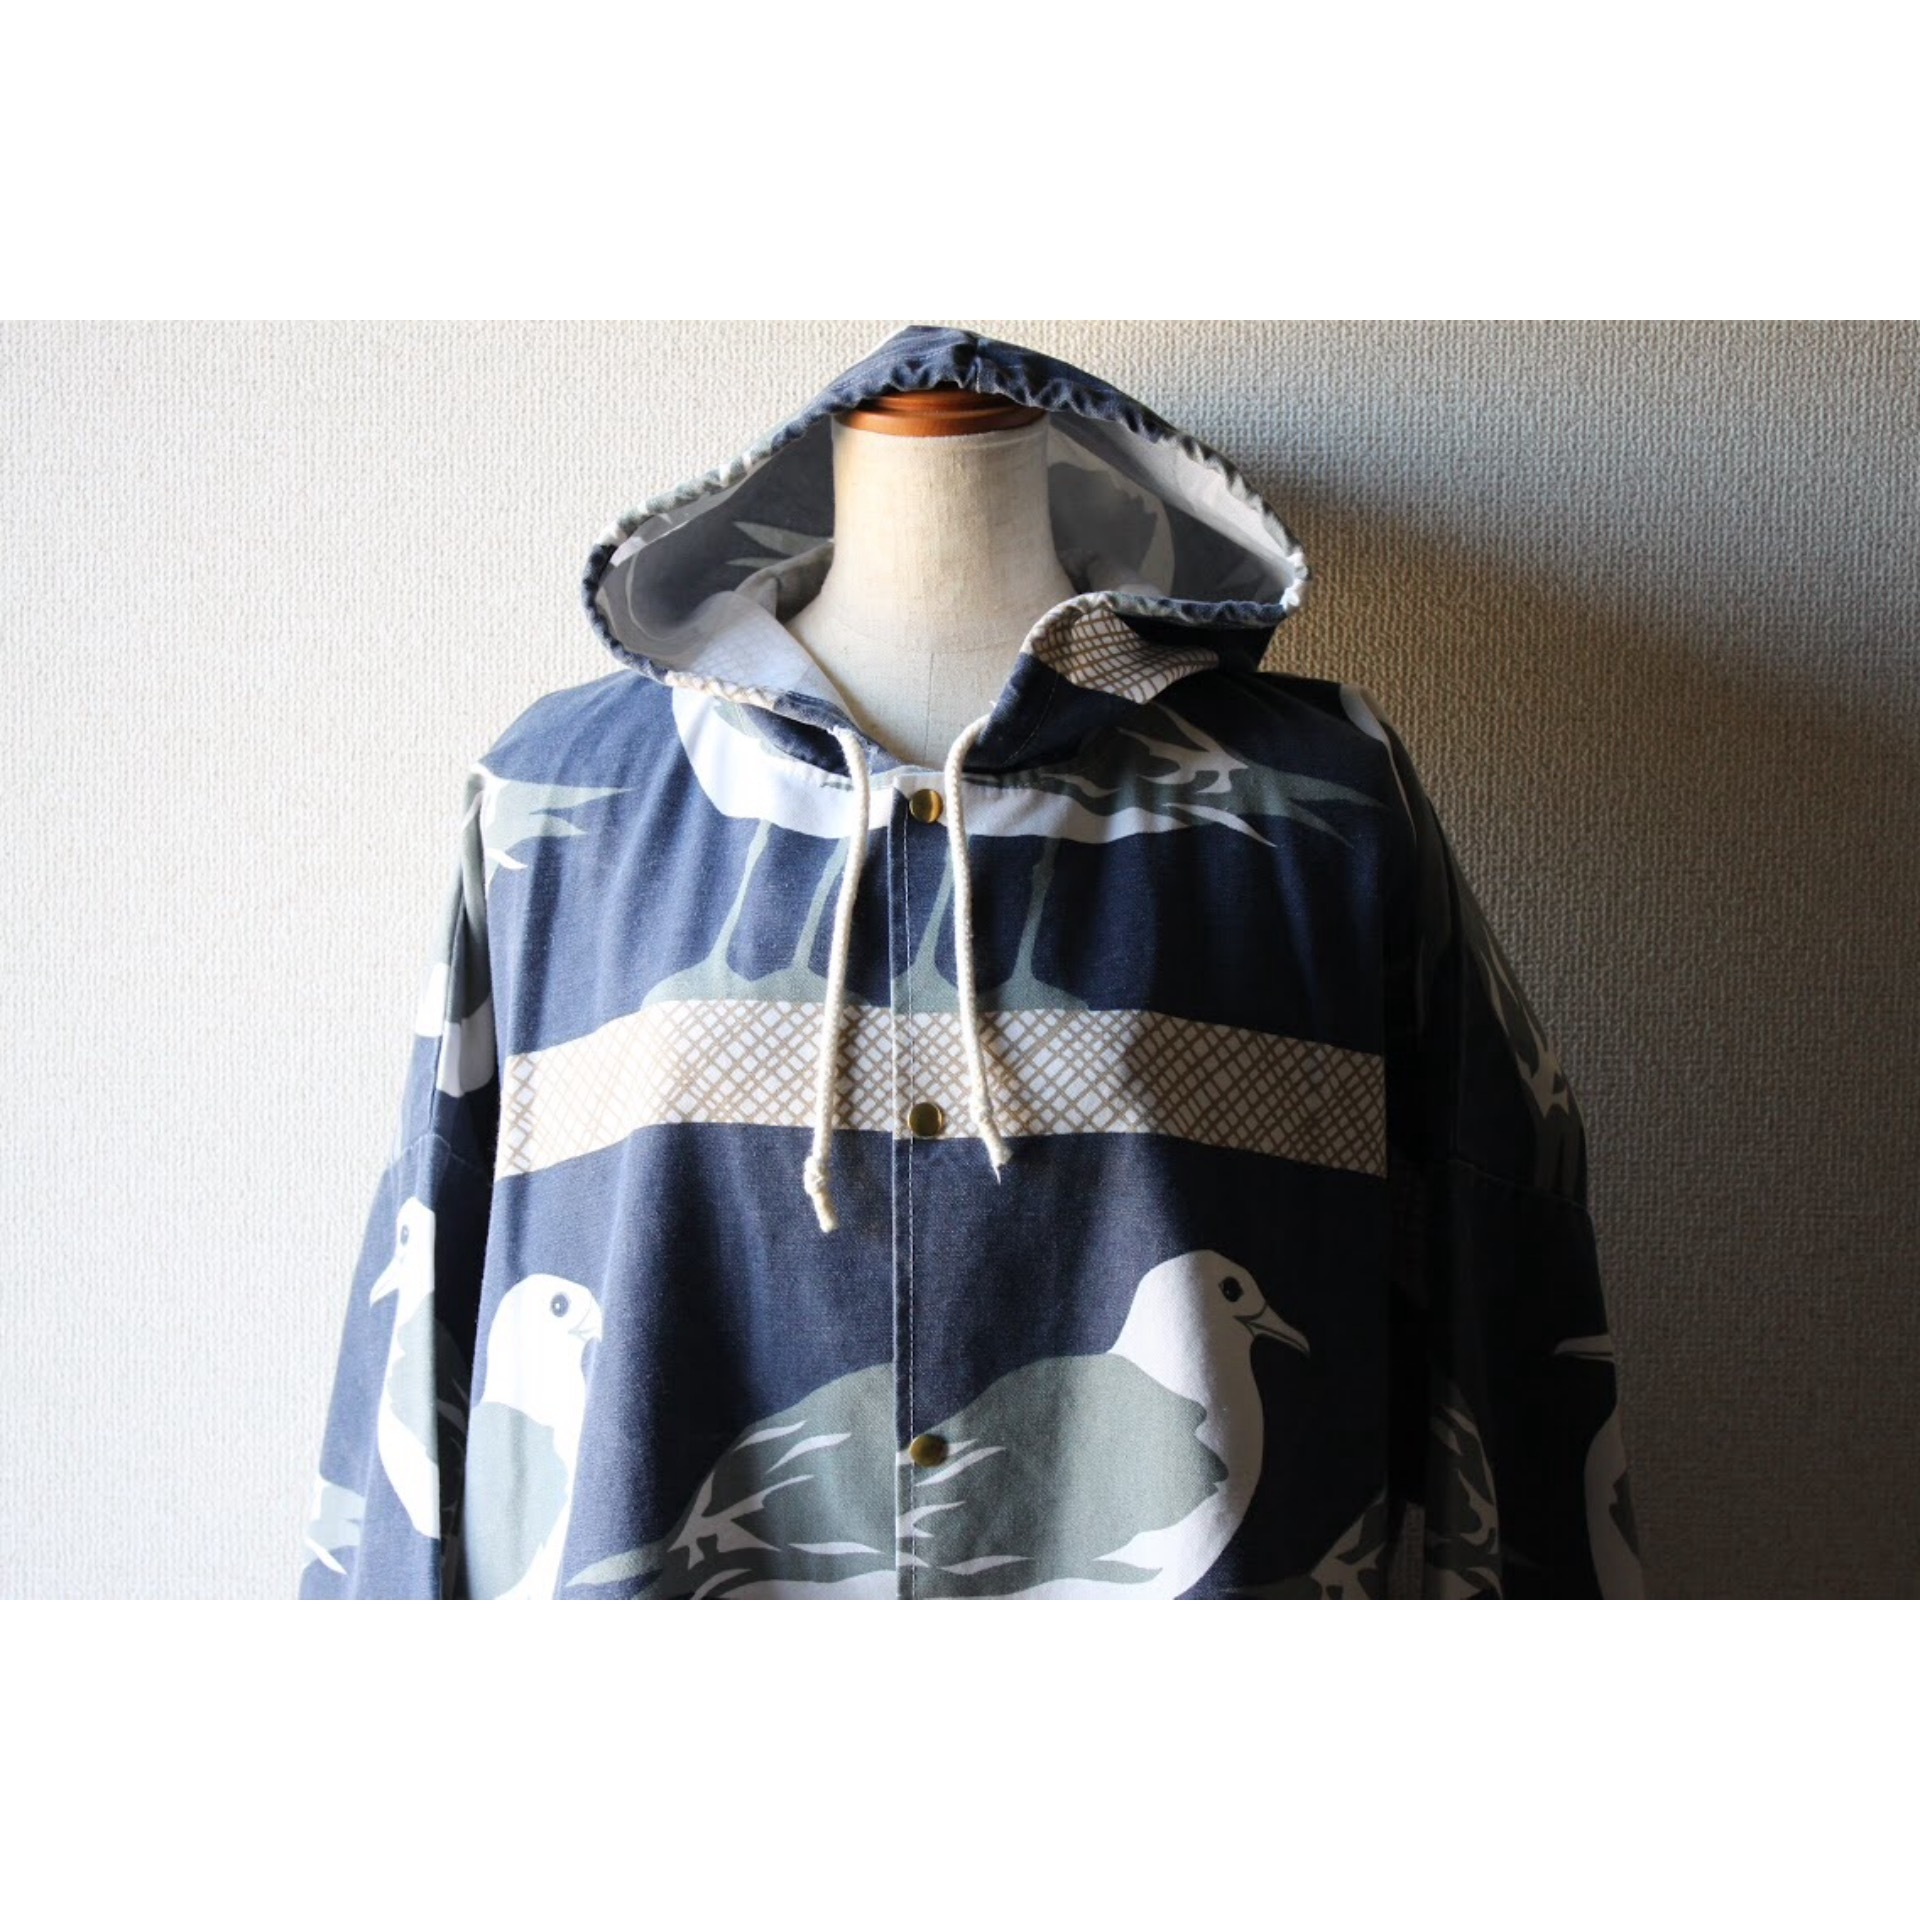 Vintage hooded jacket by Michigan rag co.